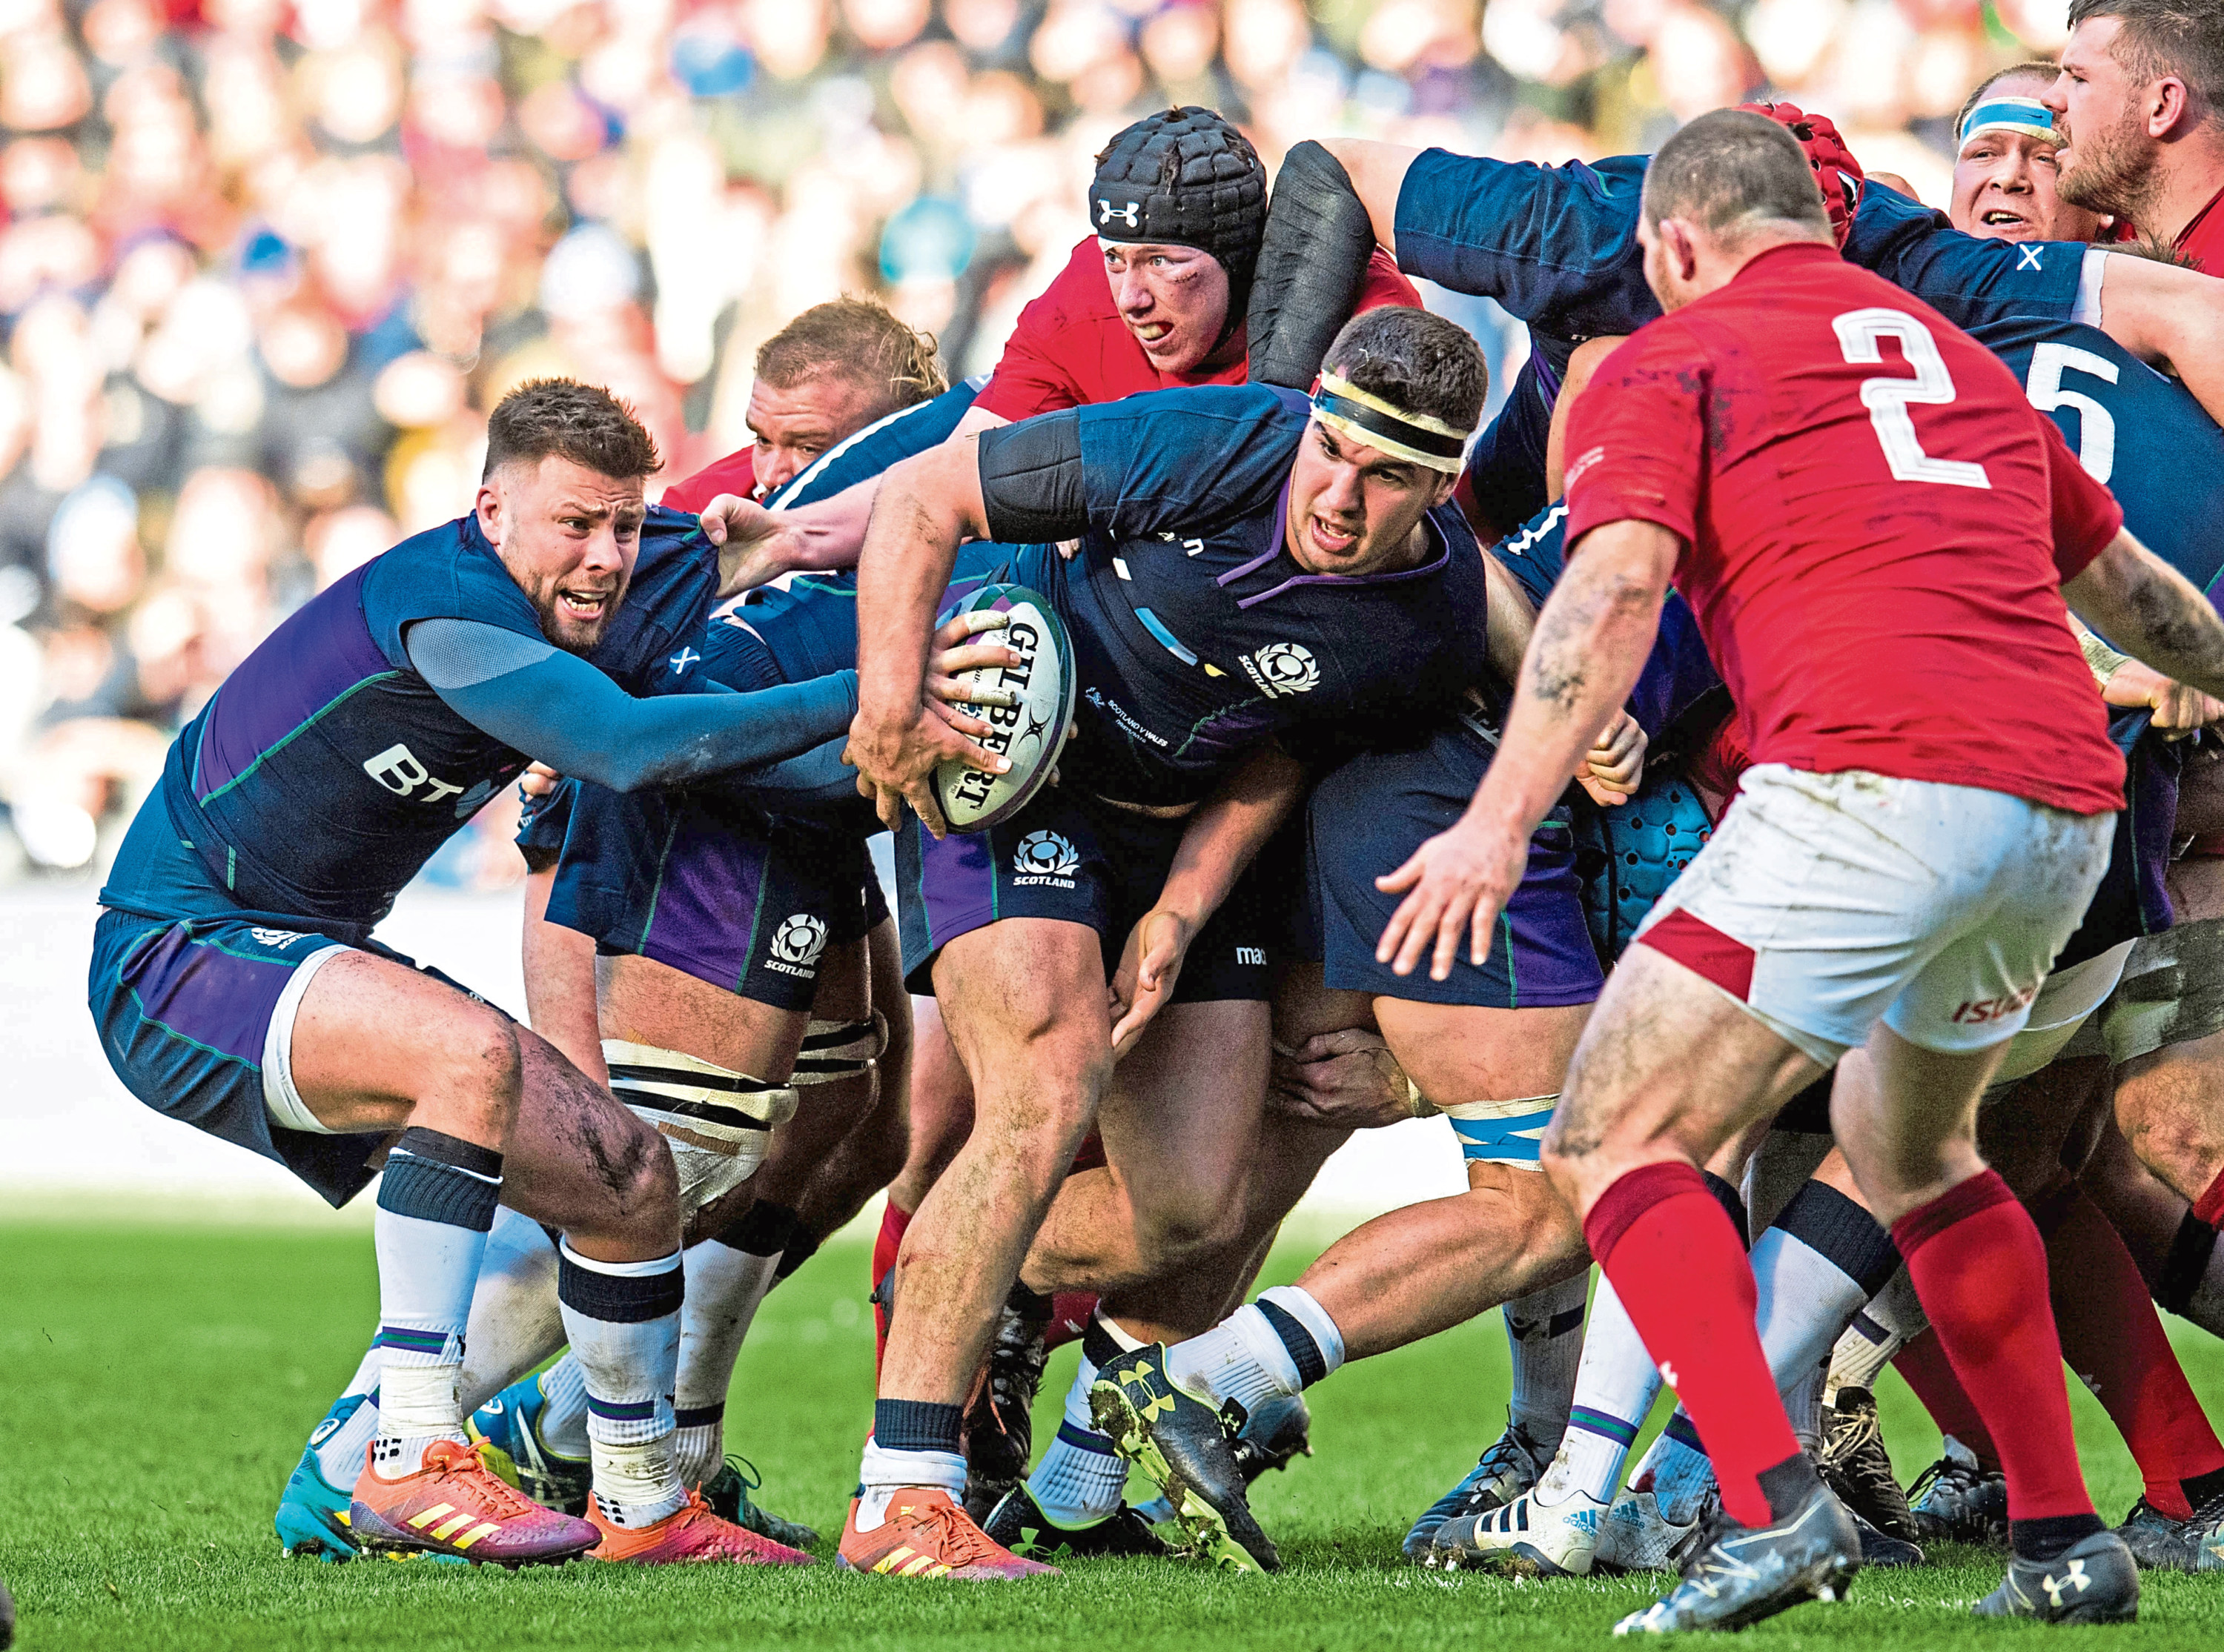 Scotland's Ali Price (L) takes the ball form the back of the maul against Wales.